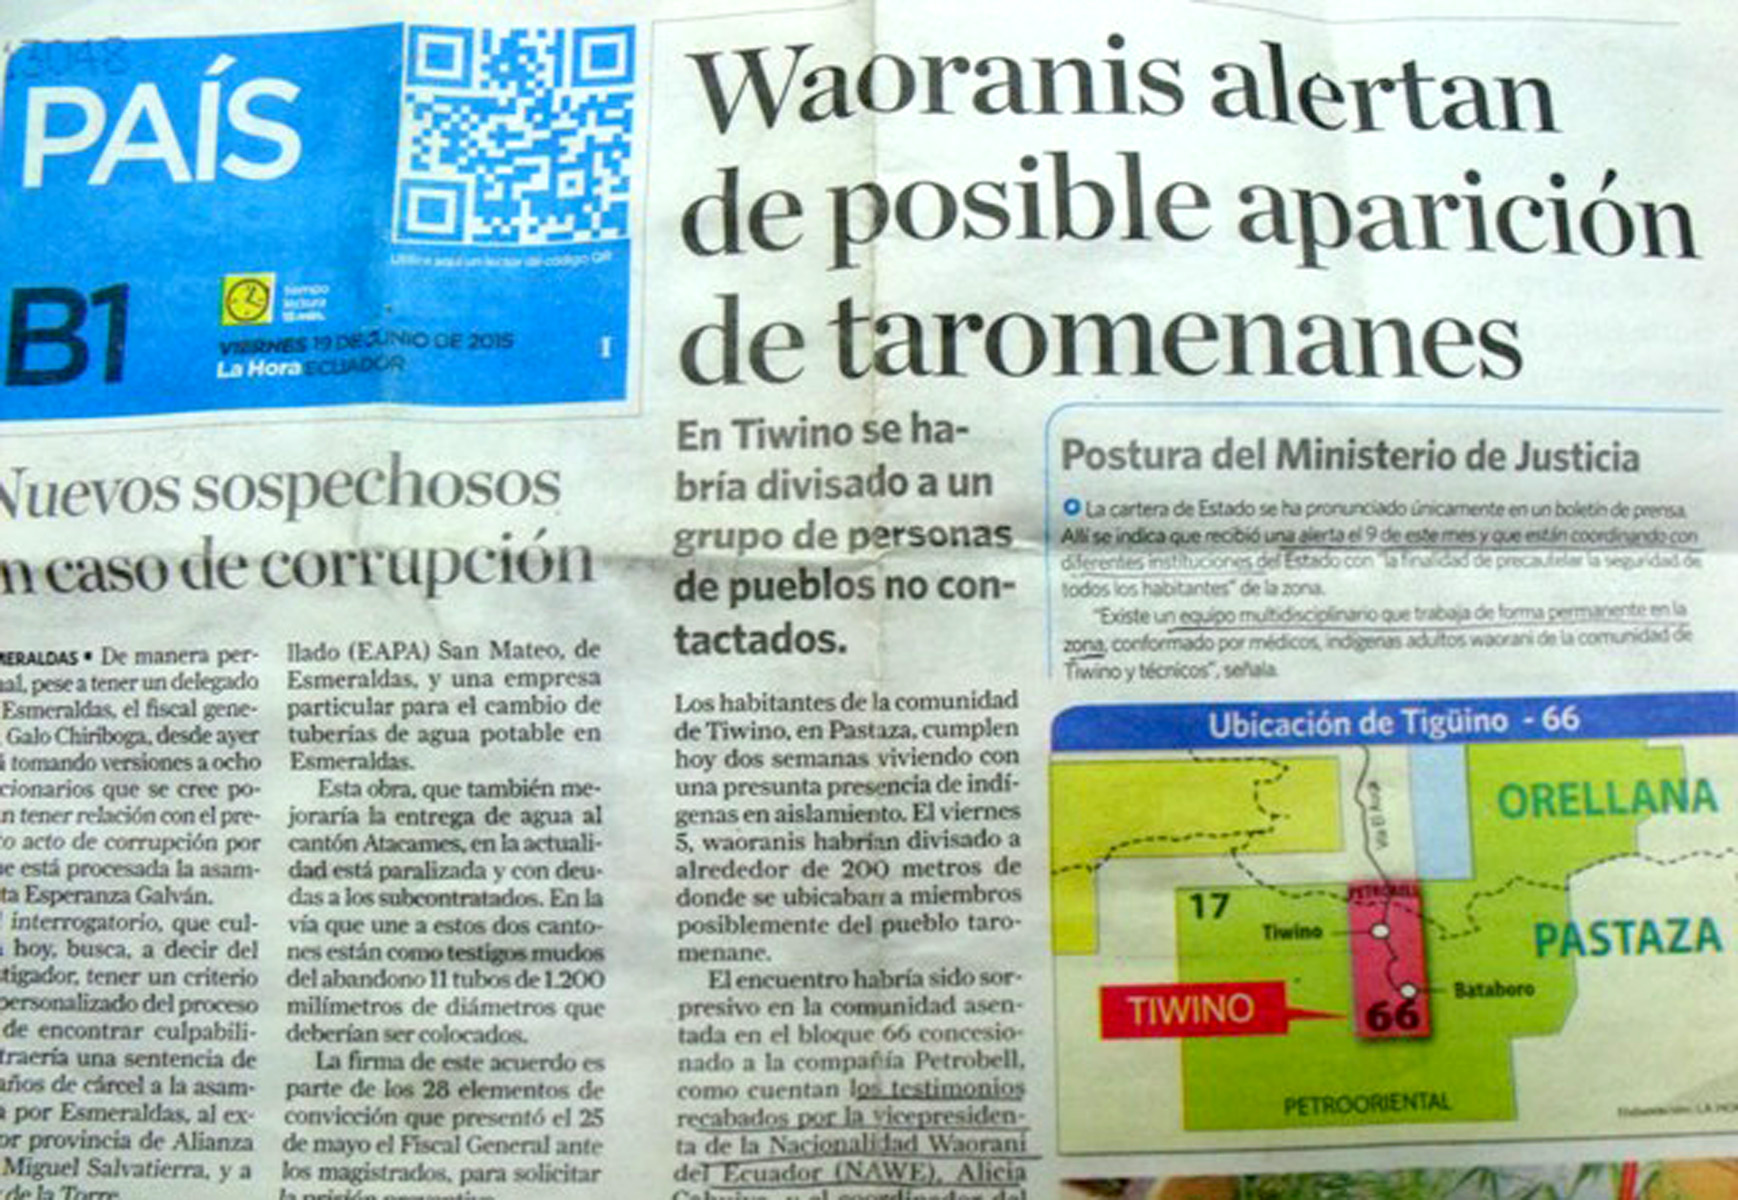 A story in the Quito daily, La Hora, tells about the recent sighting of the reclusive group known as Taromenane.